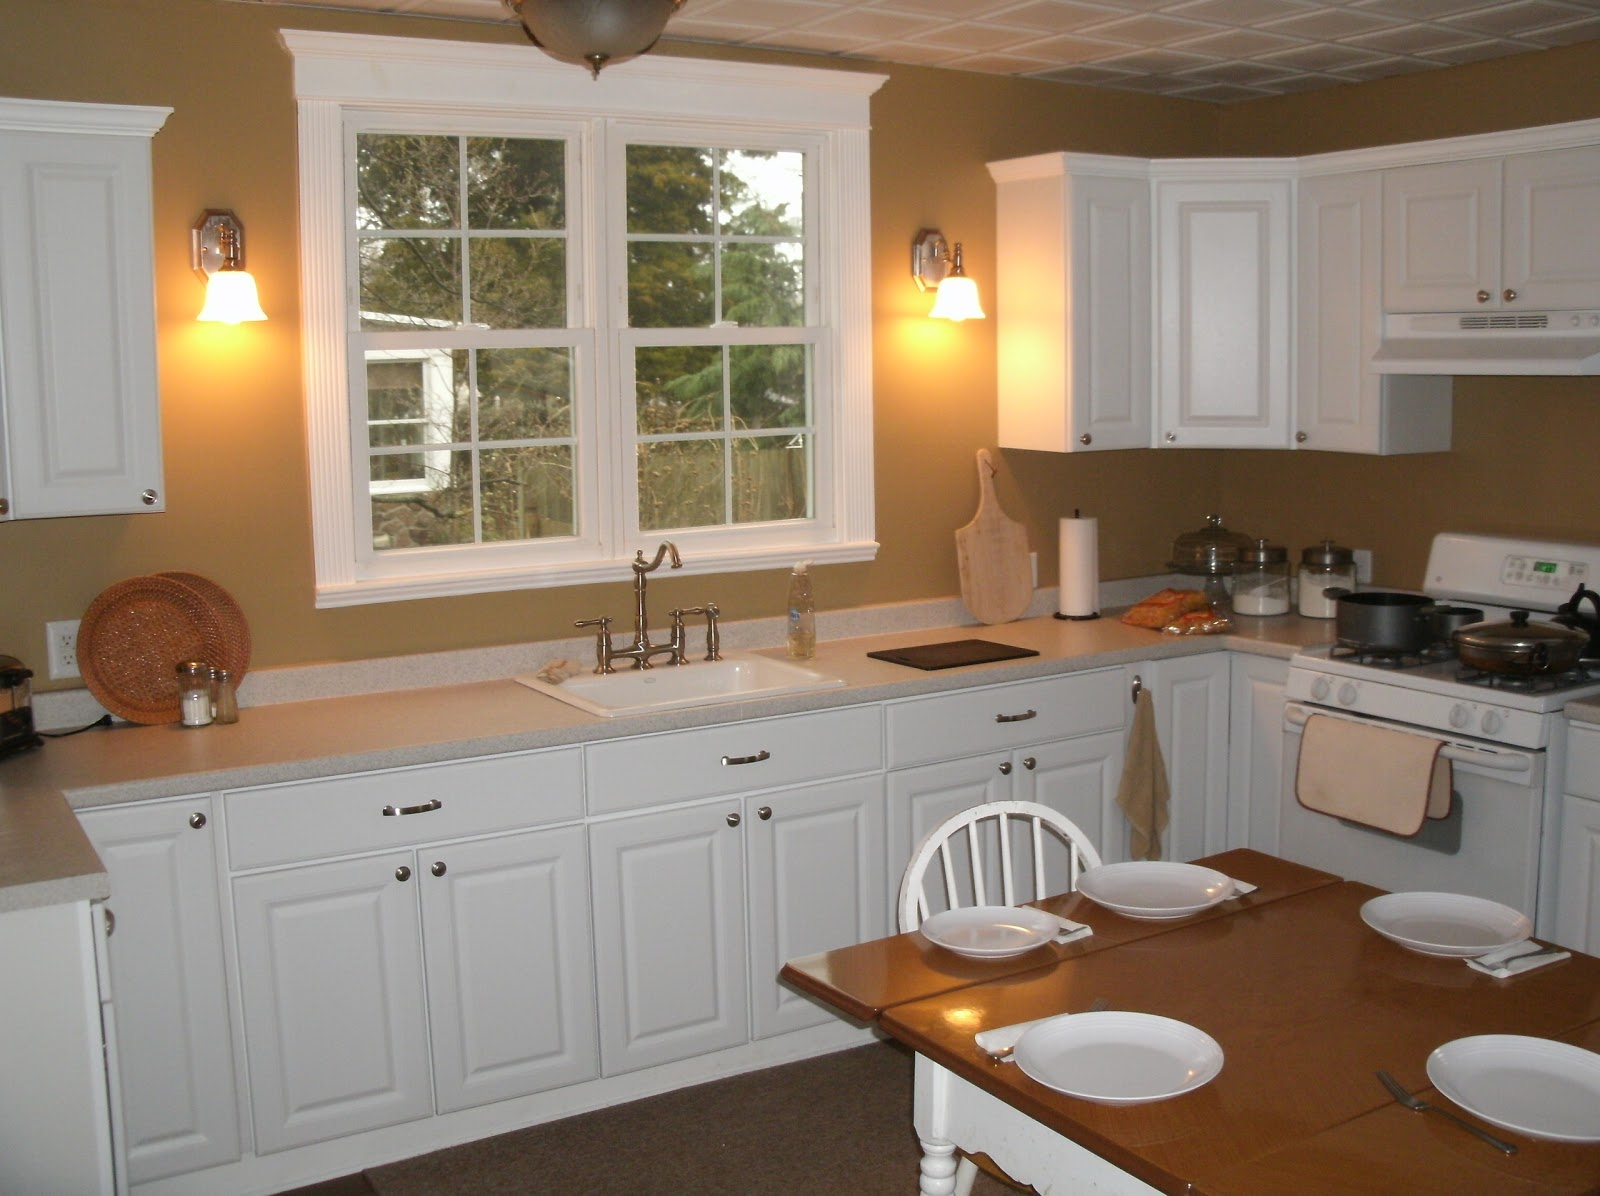 Home remodeling and improvements tips and how to 39 s for Small kitchen remodel